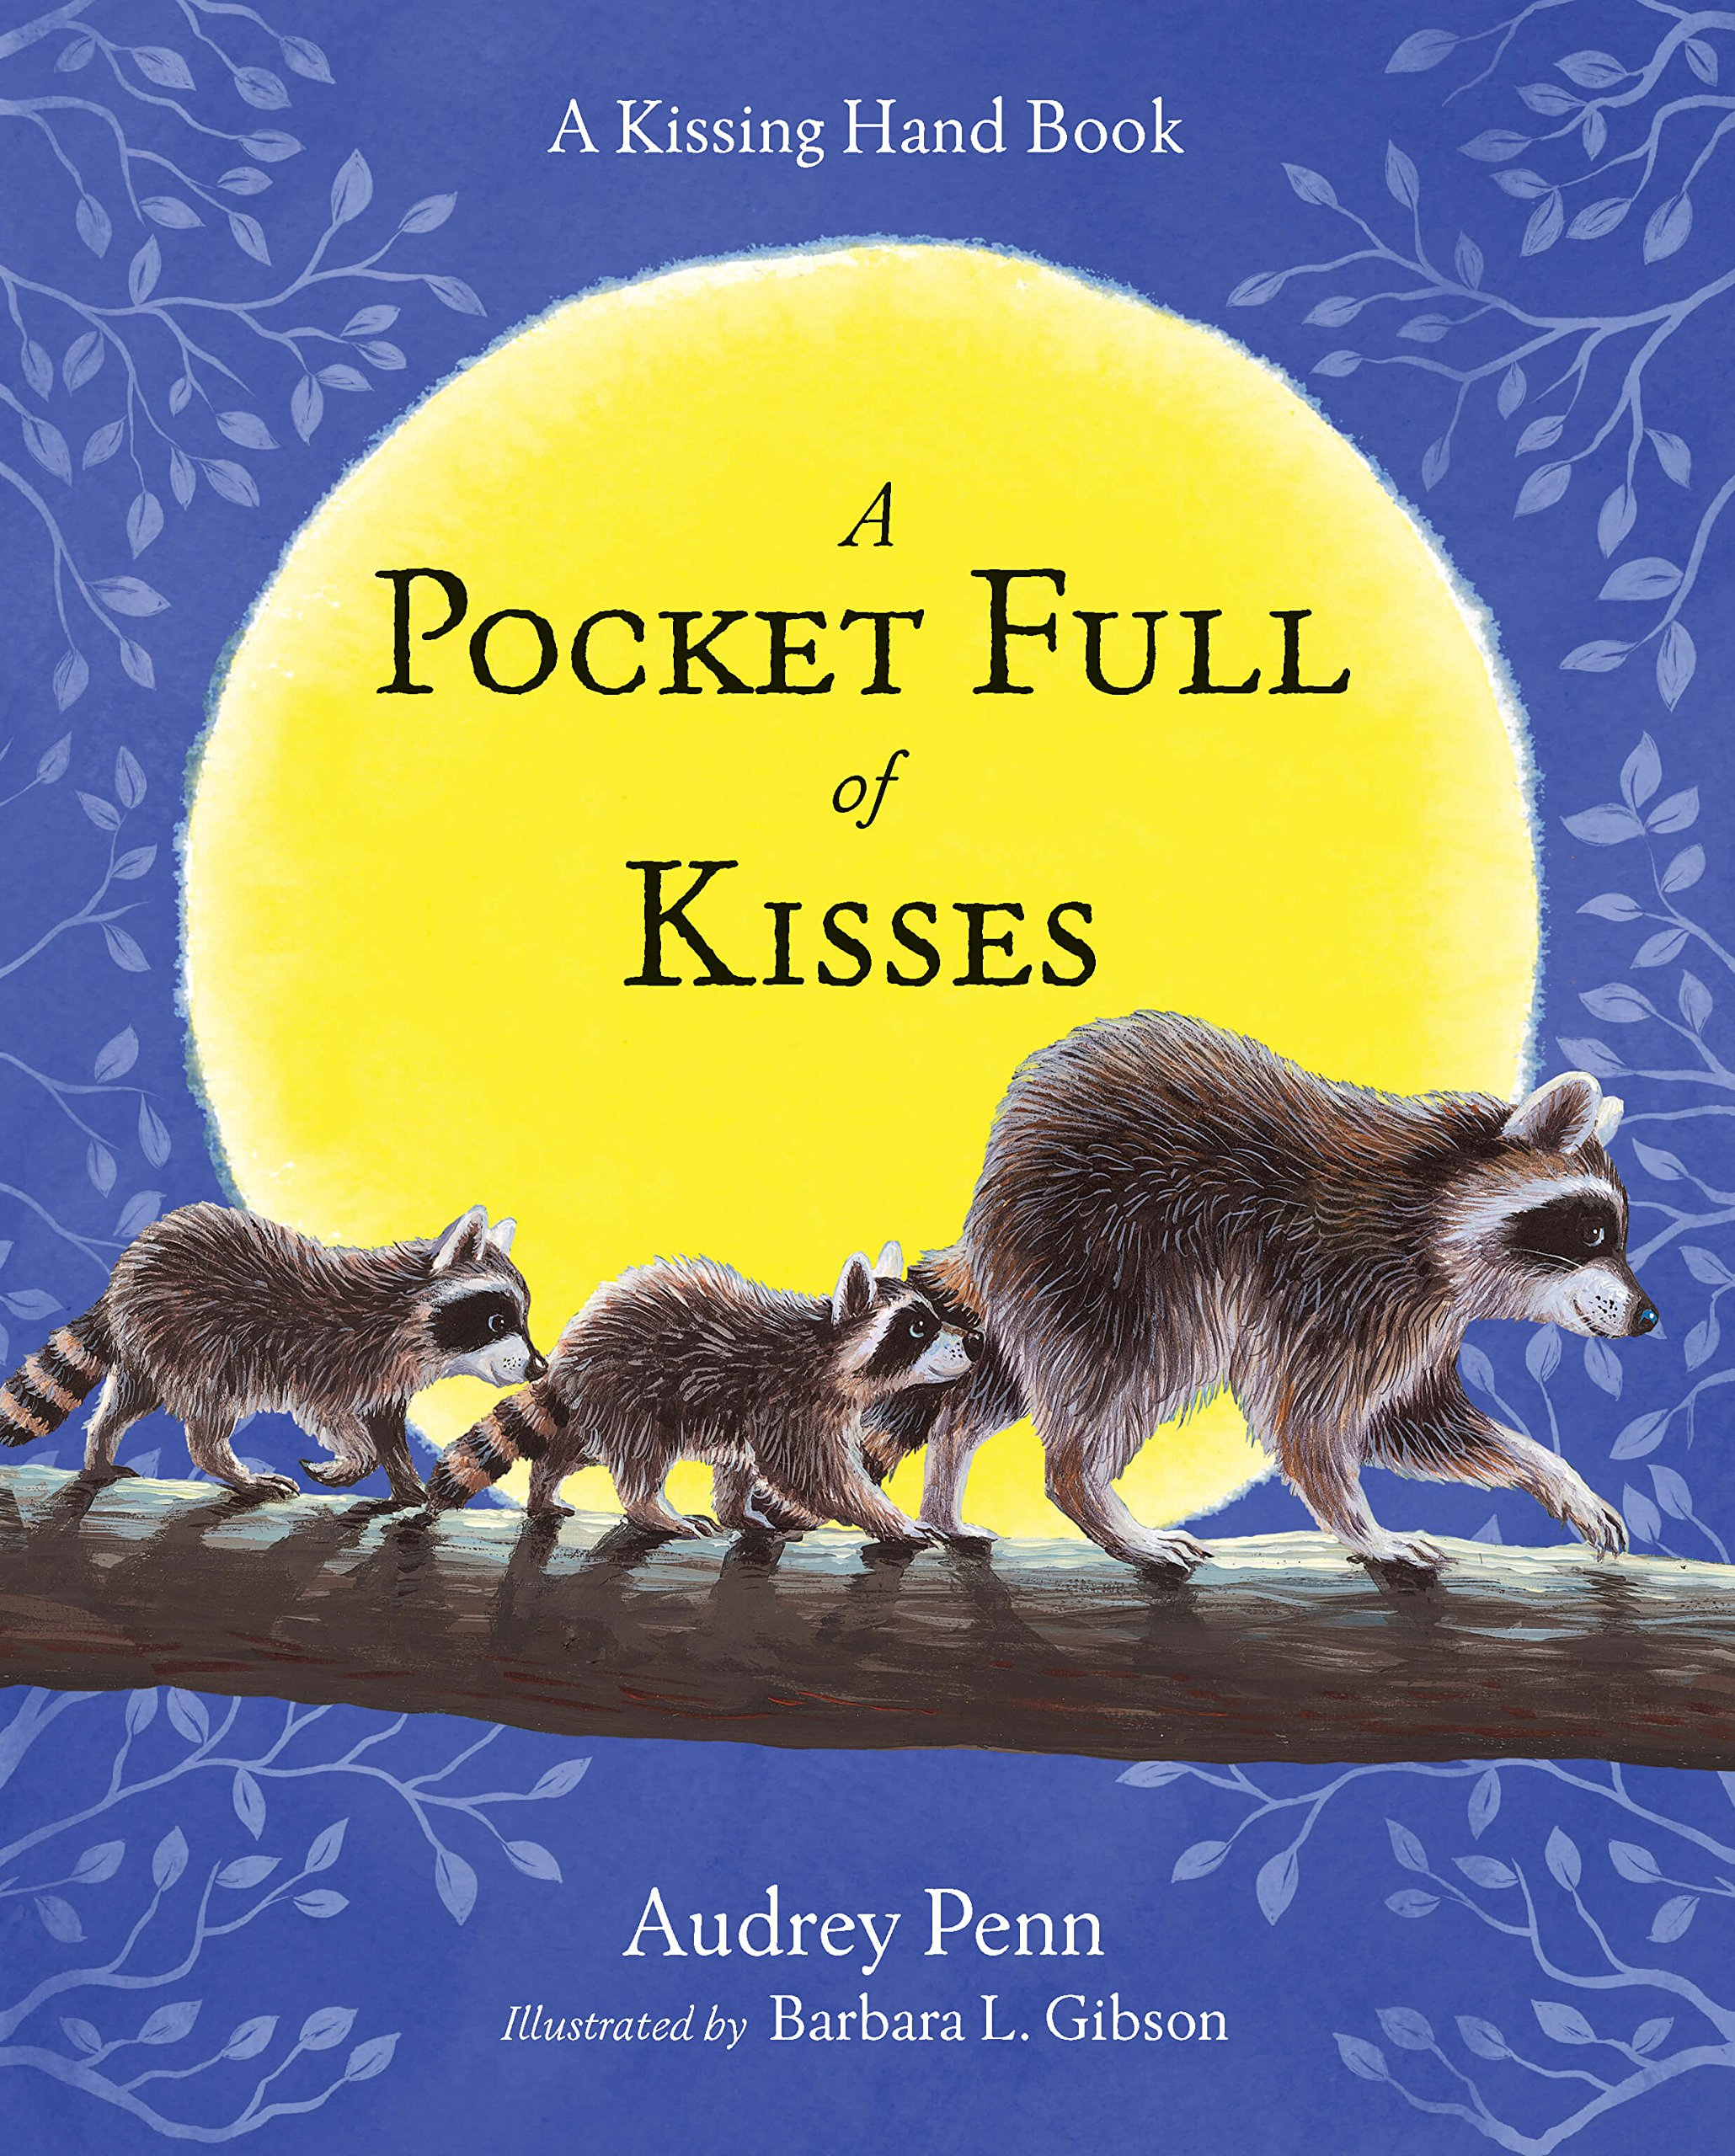 A Pocket Full of Kisses (The Kissing Hand Series) by Brand: Tanglewood Press (Image #1)